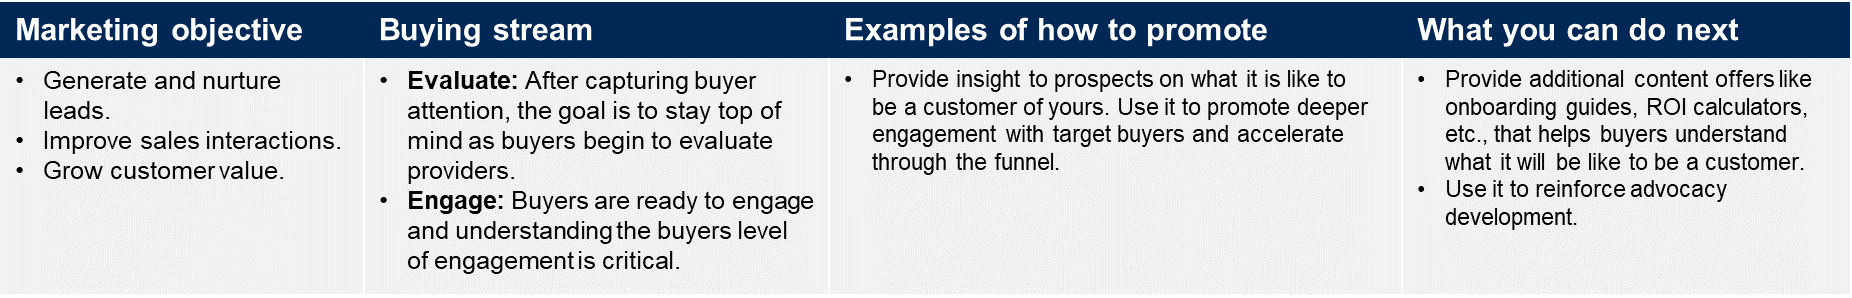 Peer Lessons Learned for Demand Generation